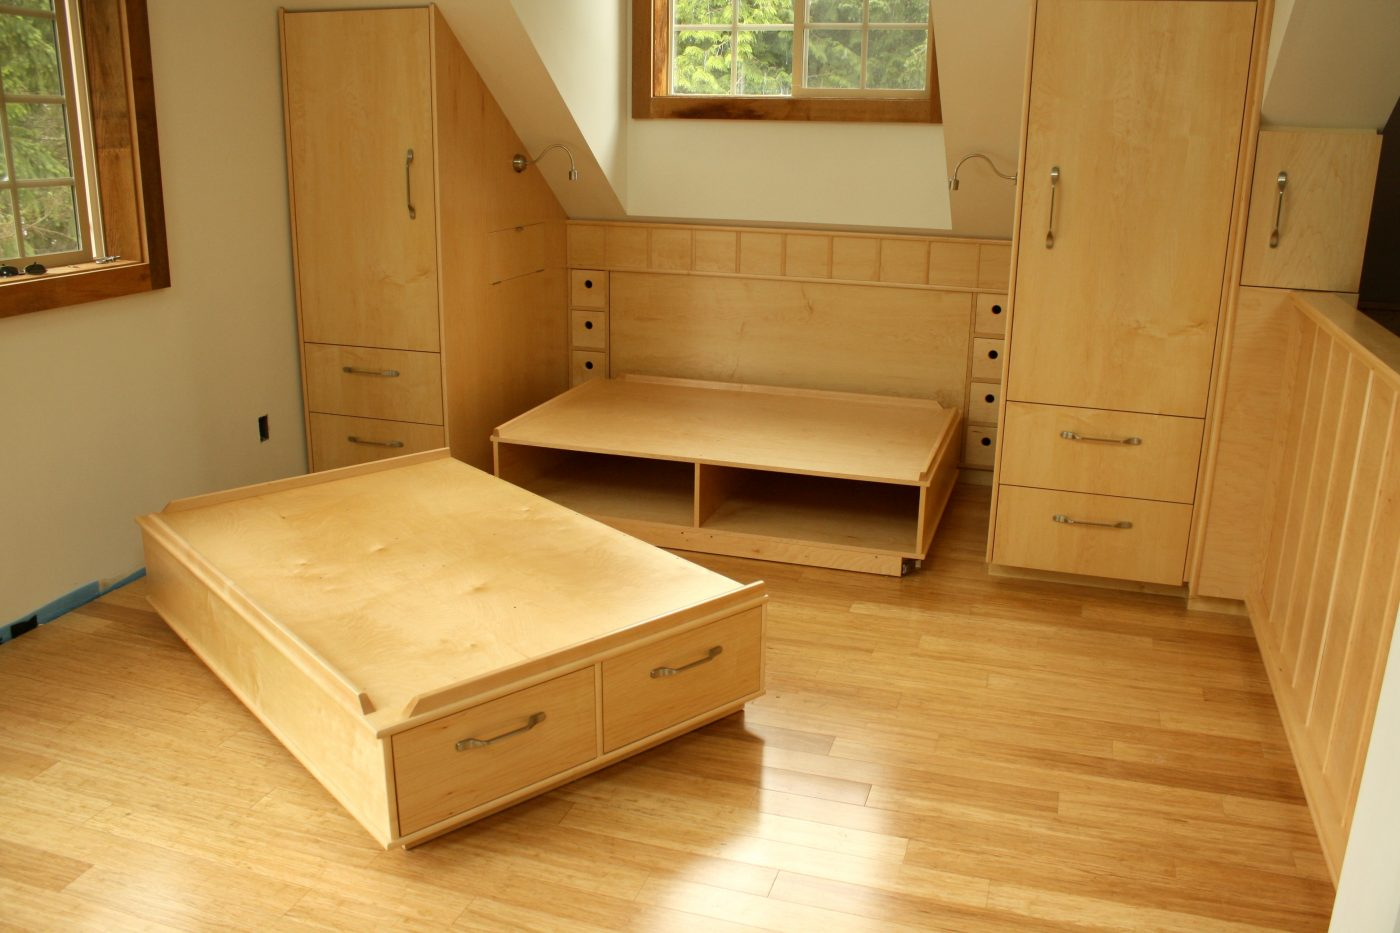 Bedroom built in, extra storage